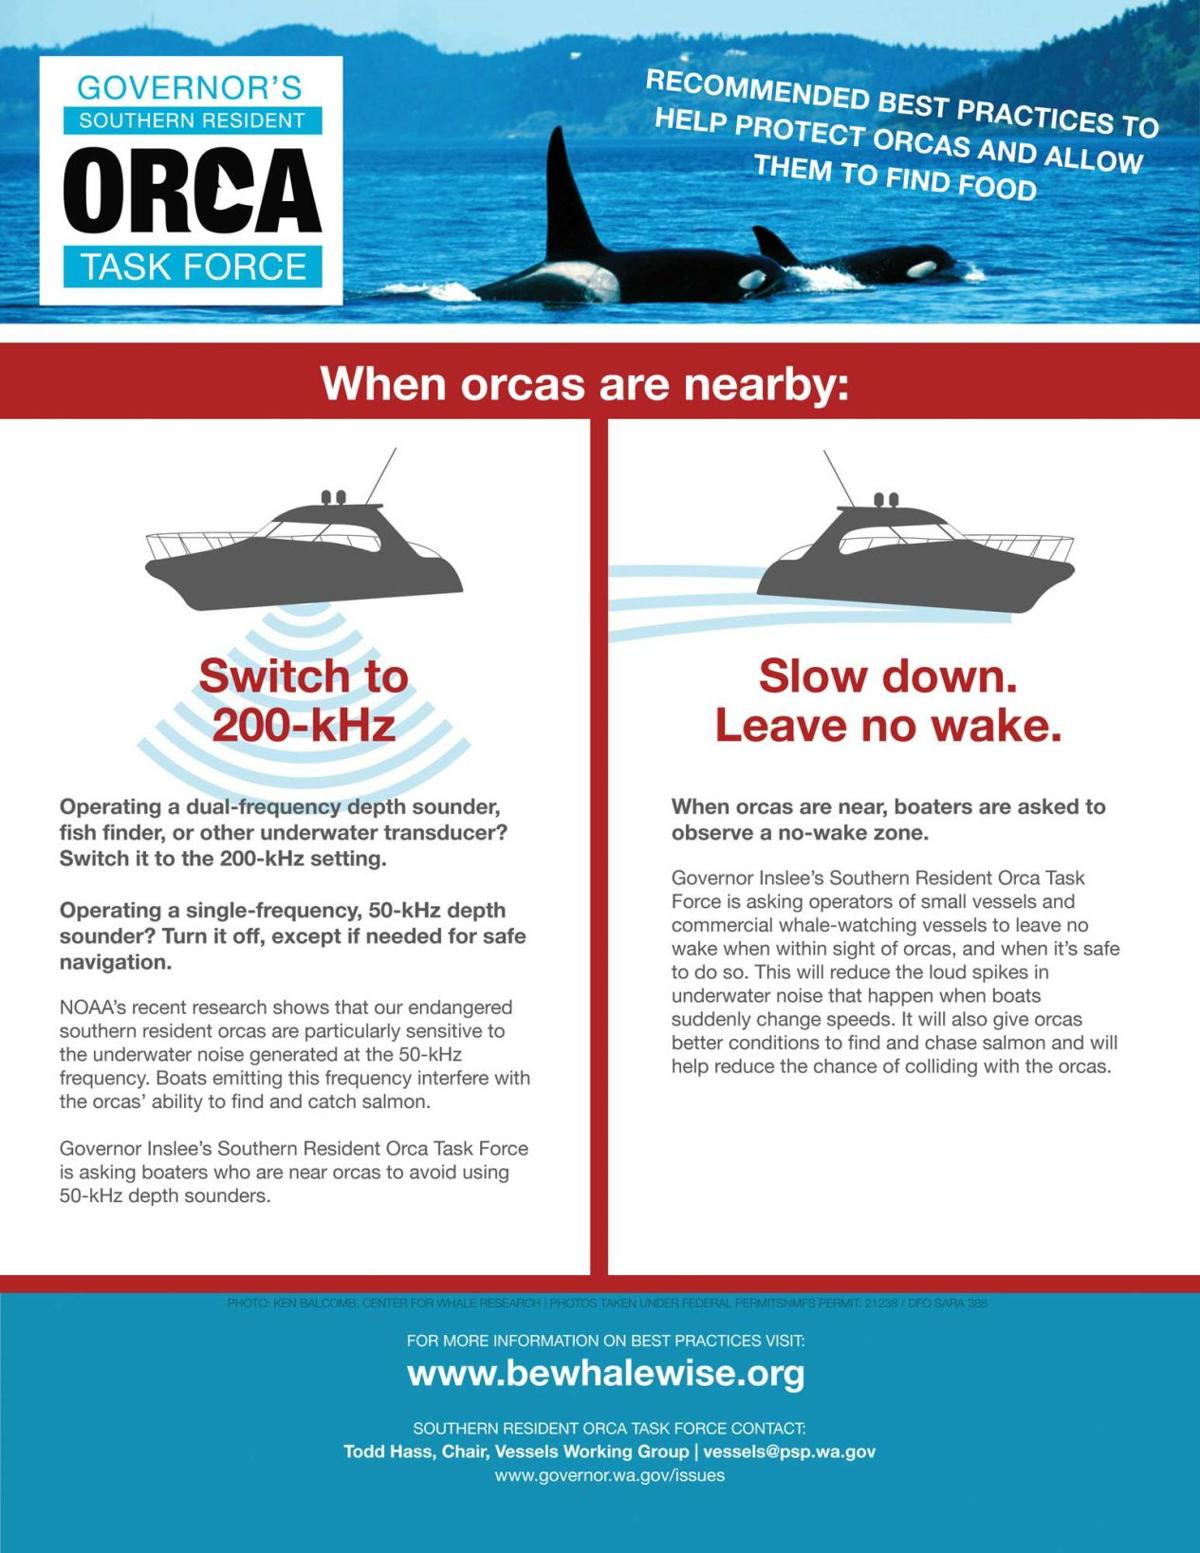 Boaters asked to help reduce noise impacts on orcas | News